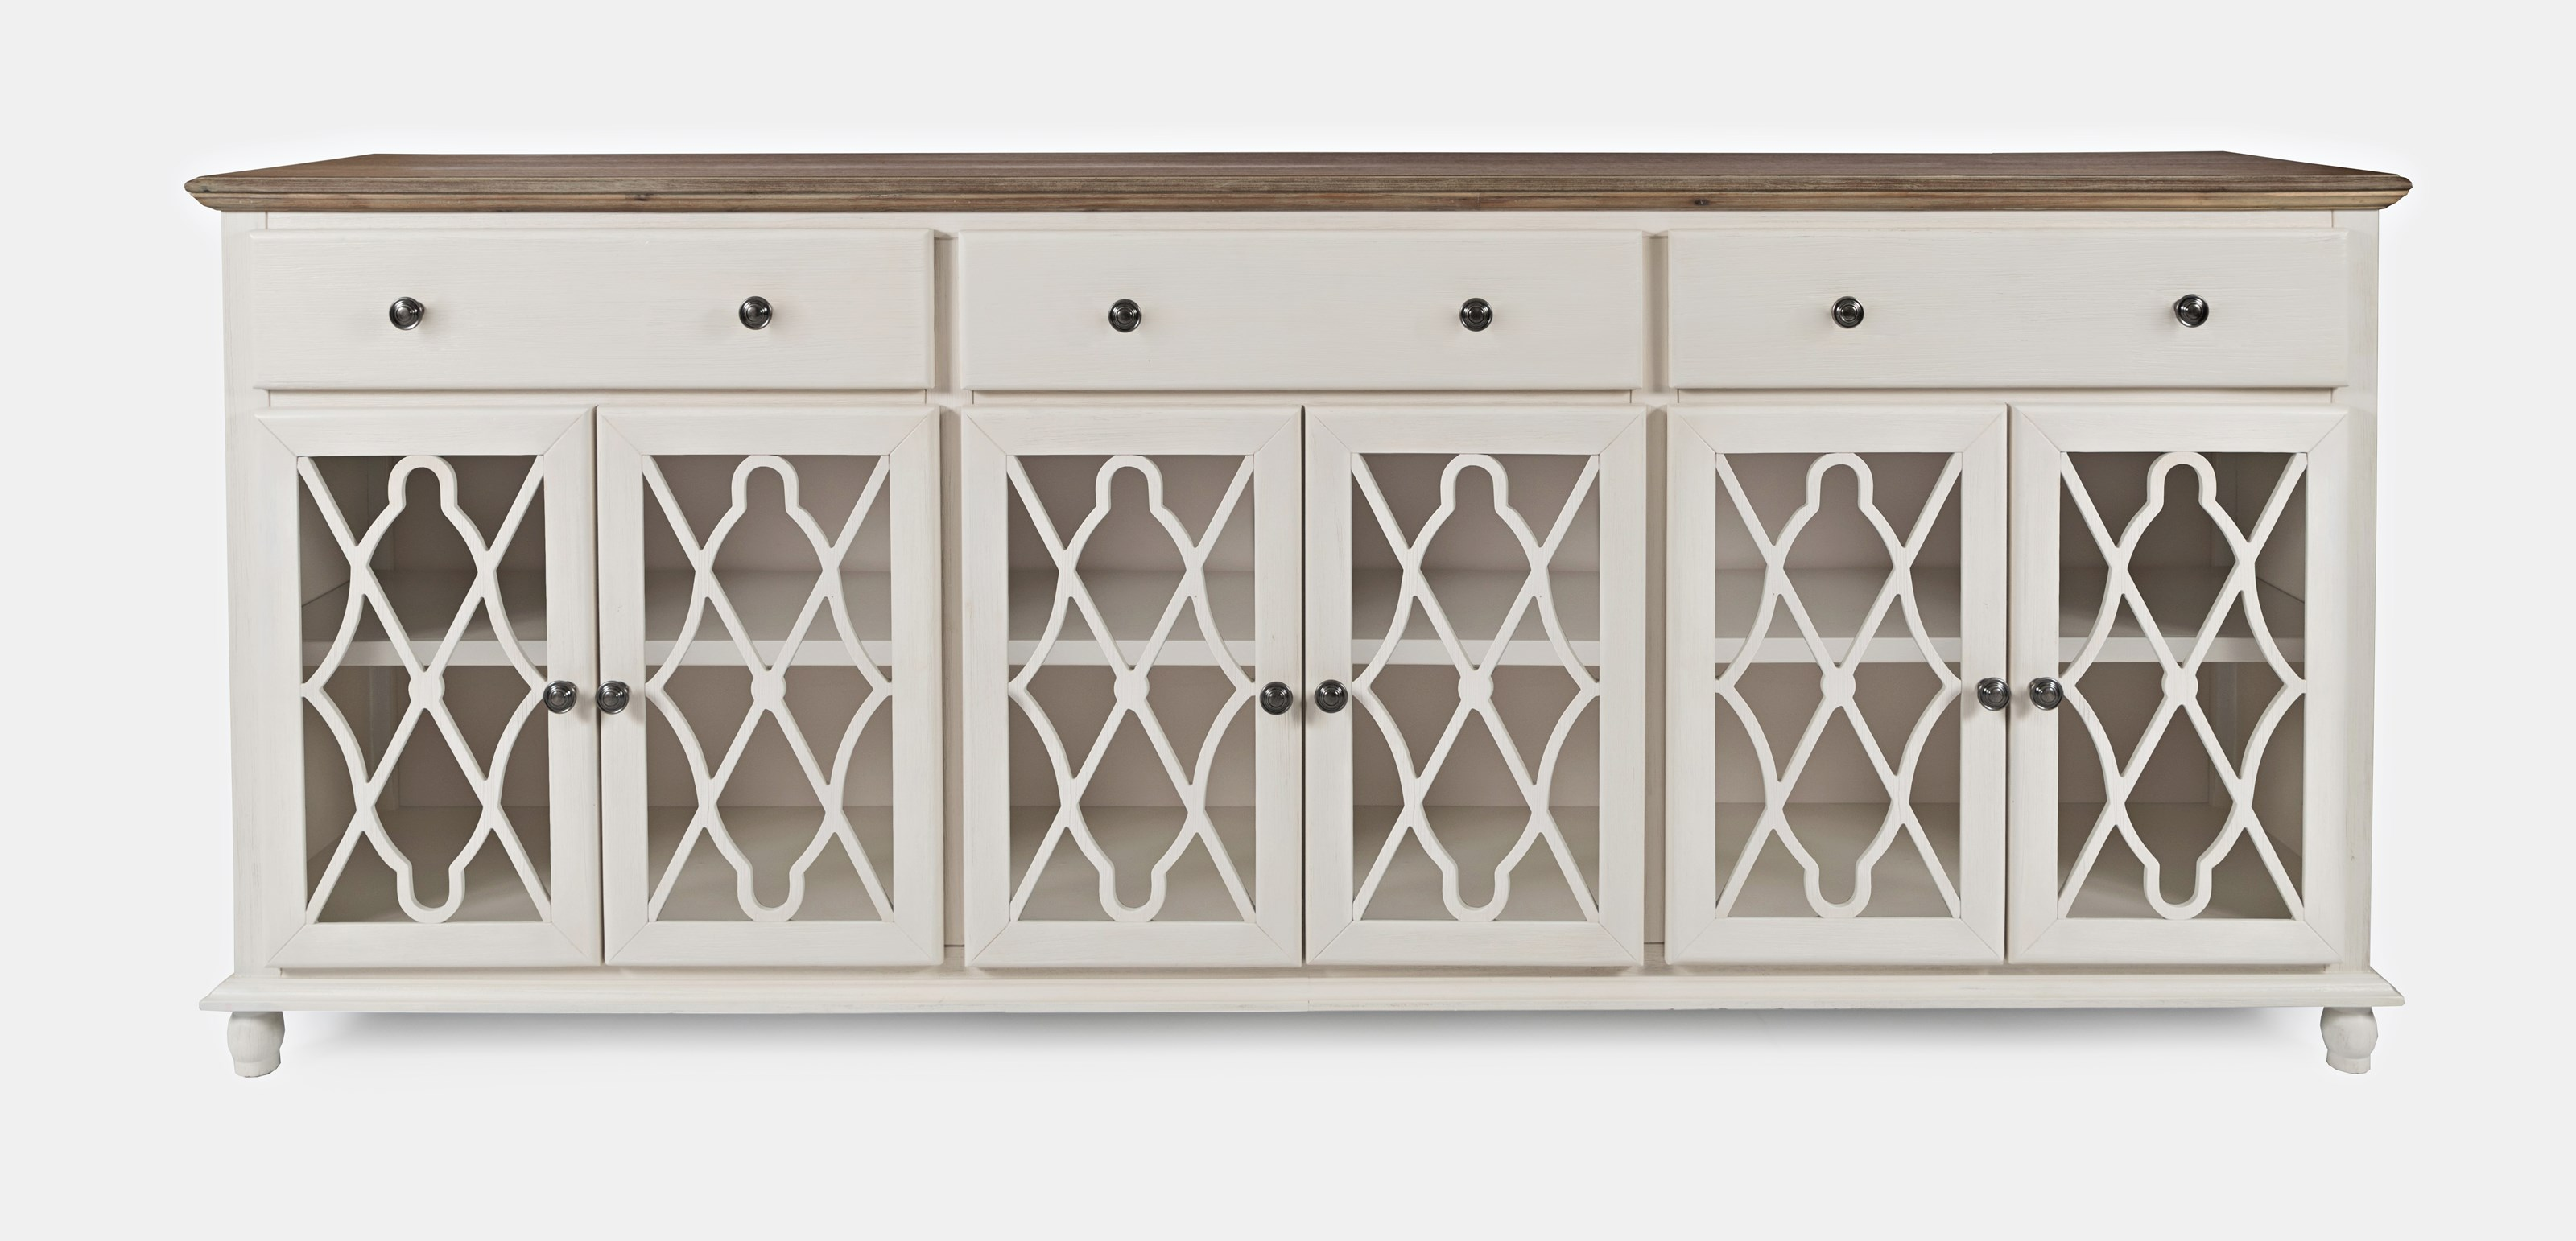 Aurora Hills 6-Door Accent Chest by Jofran at Zak's Home